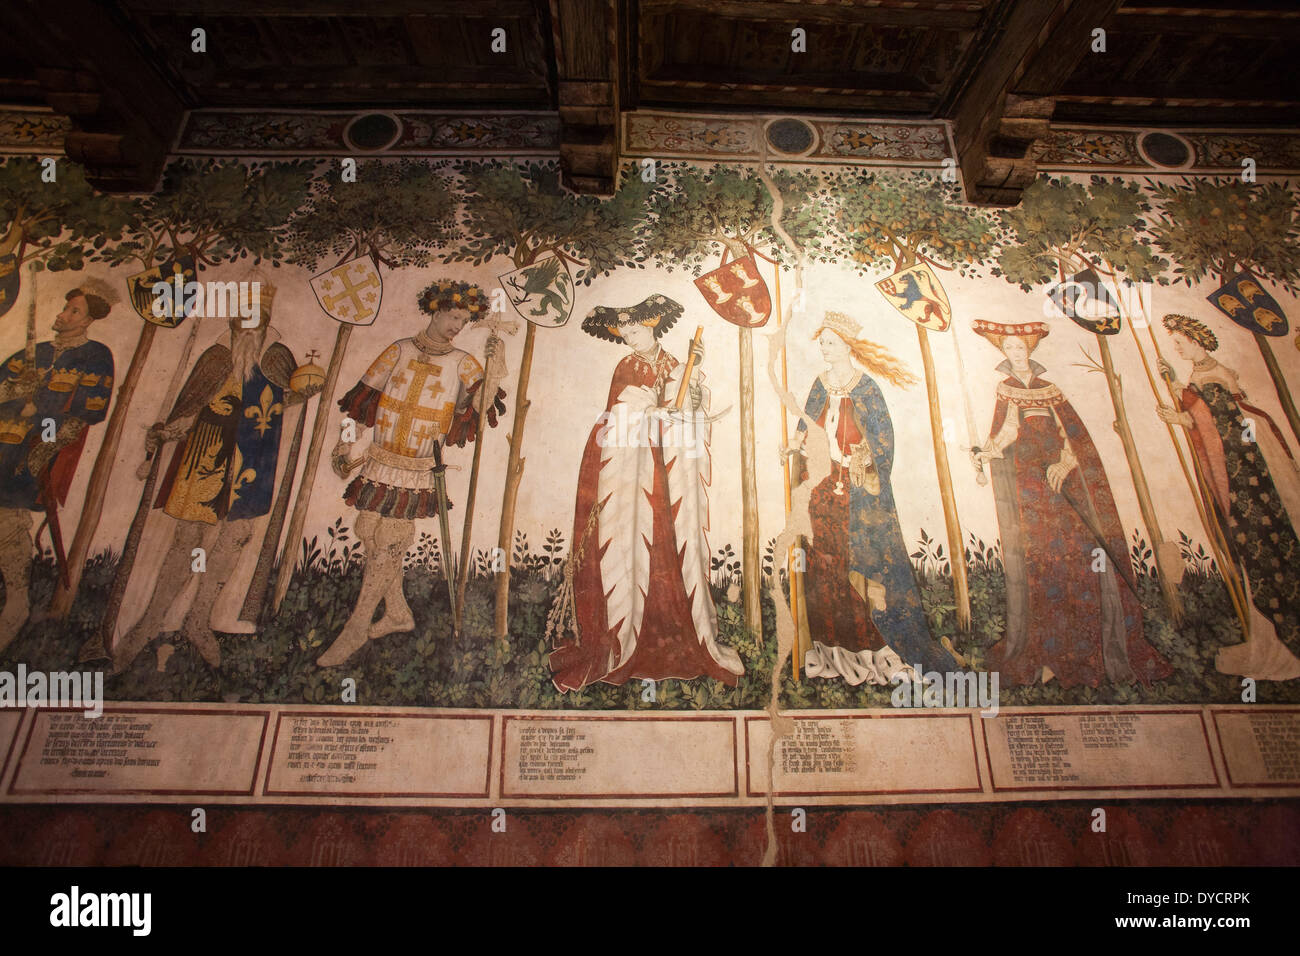 baronial hall, frescoes by the master of the manta, castle of the manta, cuneo, langhe, piemonte, italy, europe Stock Photo